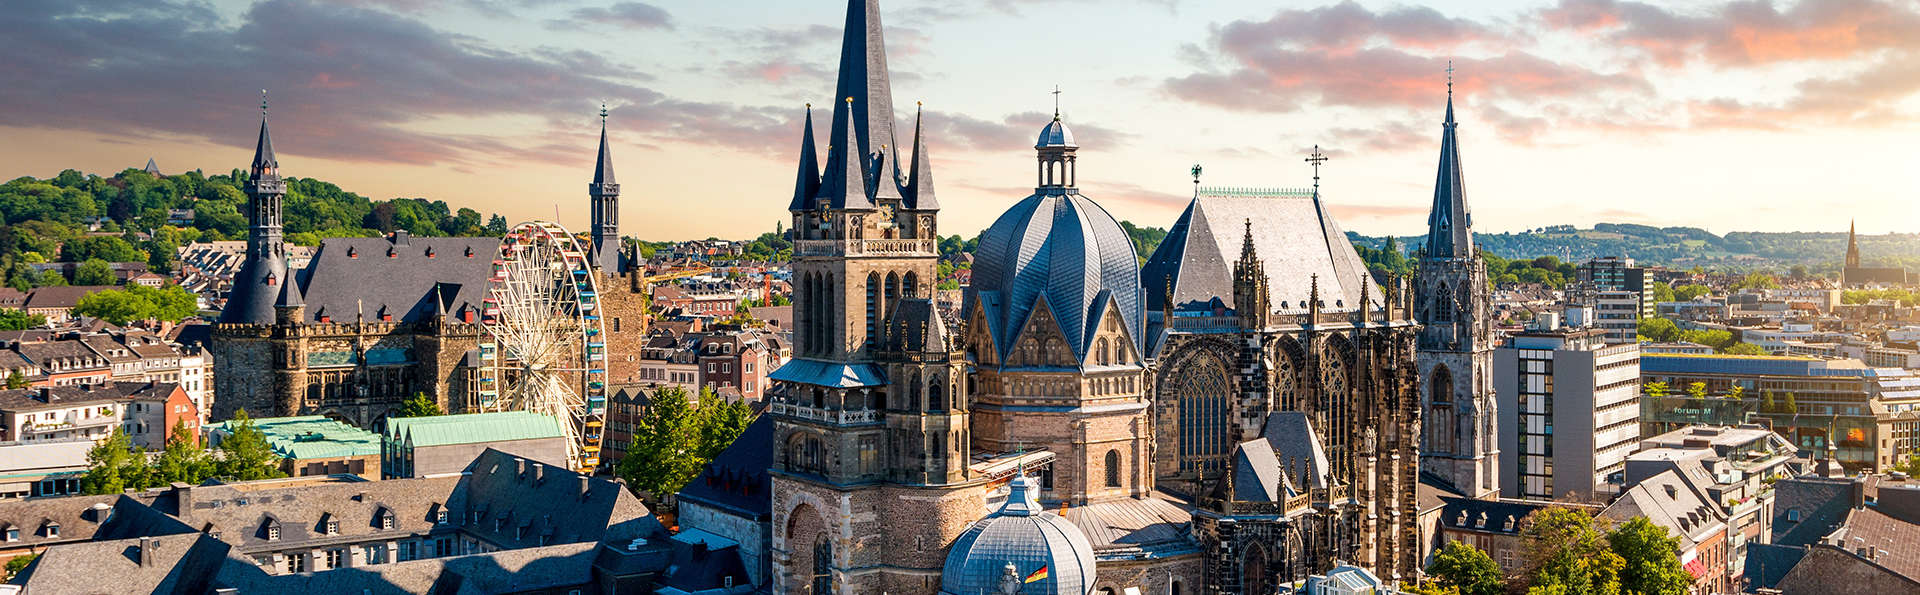 Mercure Hotel Aachen am Dom (Aken / Aix-la-Chapelle) - EDIT_destination1.jpg